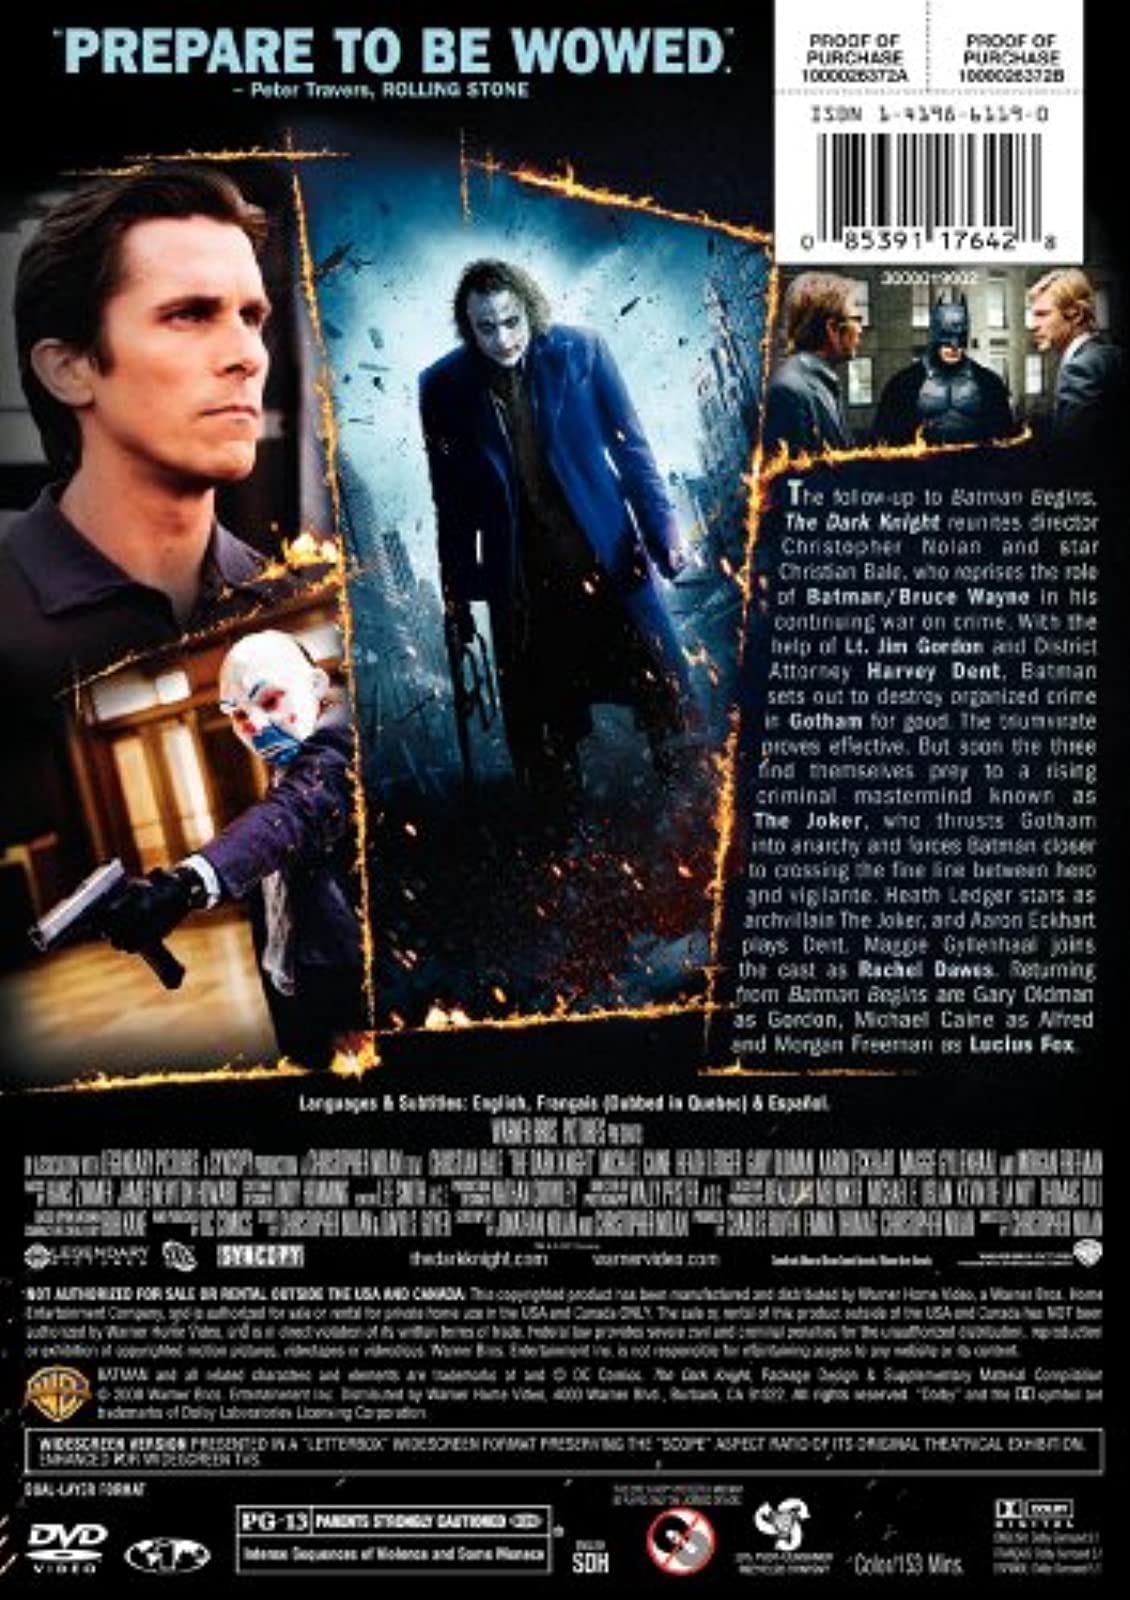 Image 2 of The Dark Knight Single-Disc Widescreen Edition On DVD With Christian